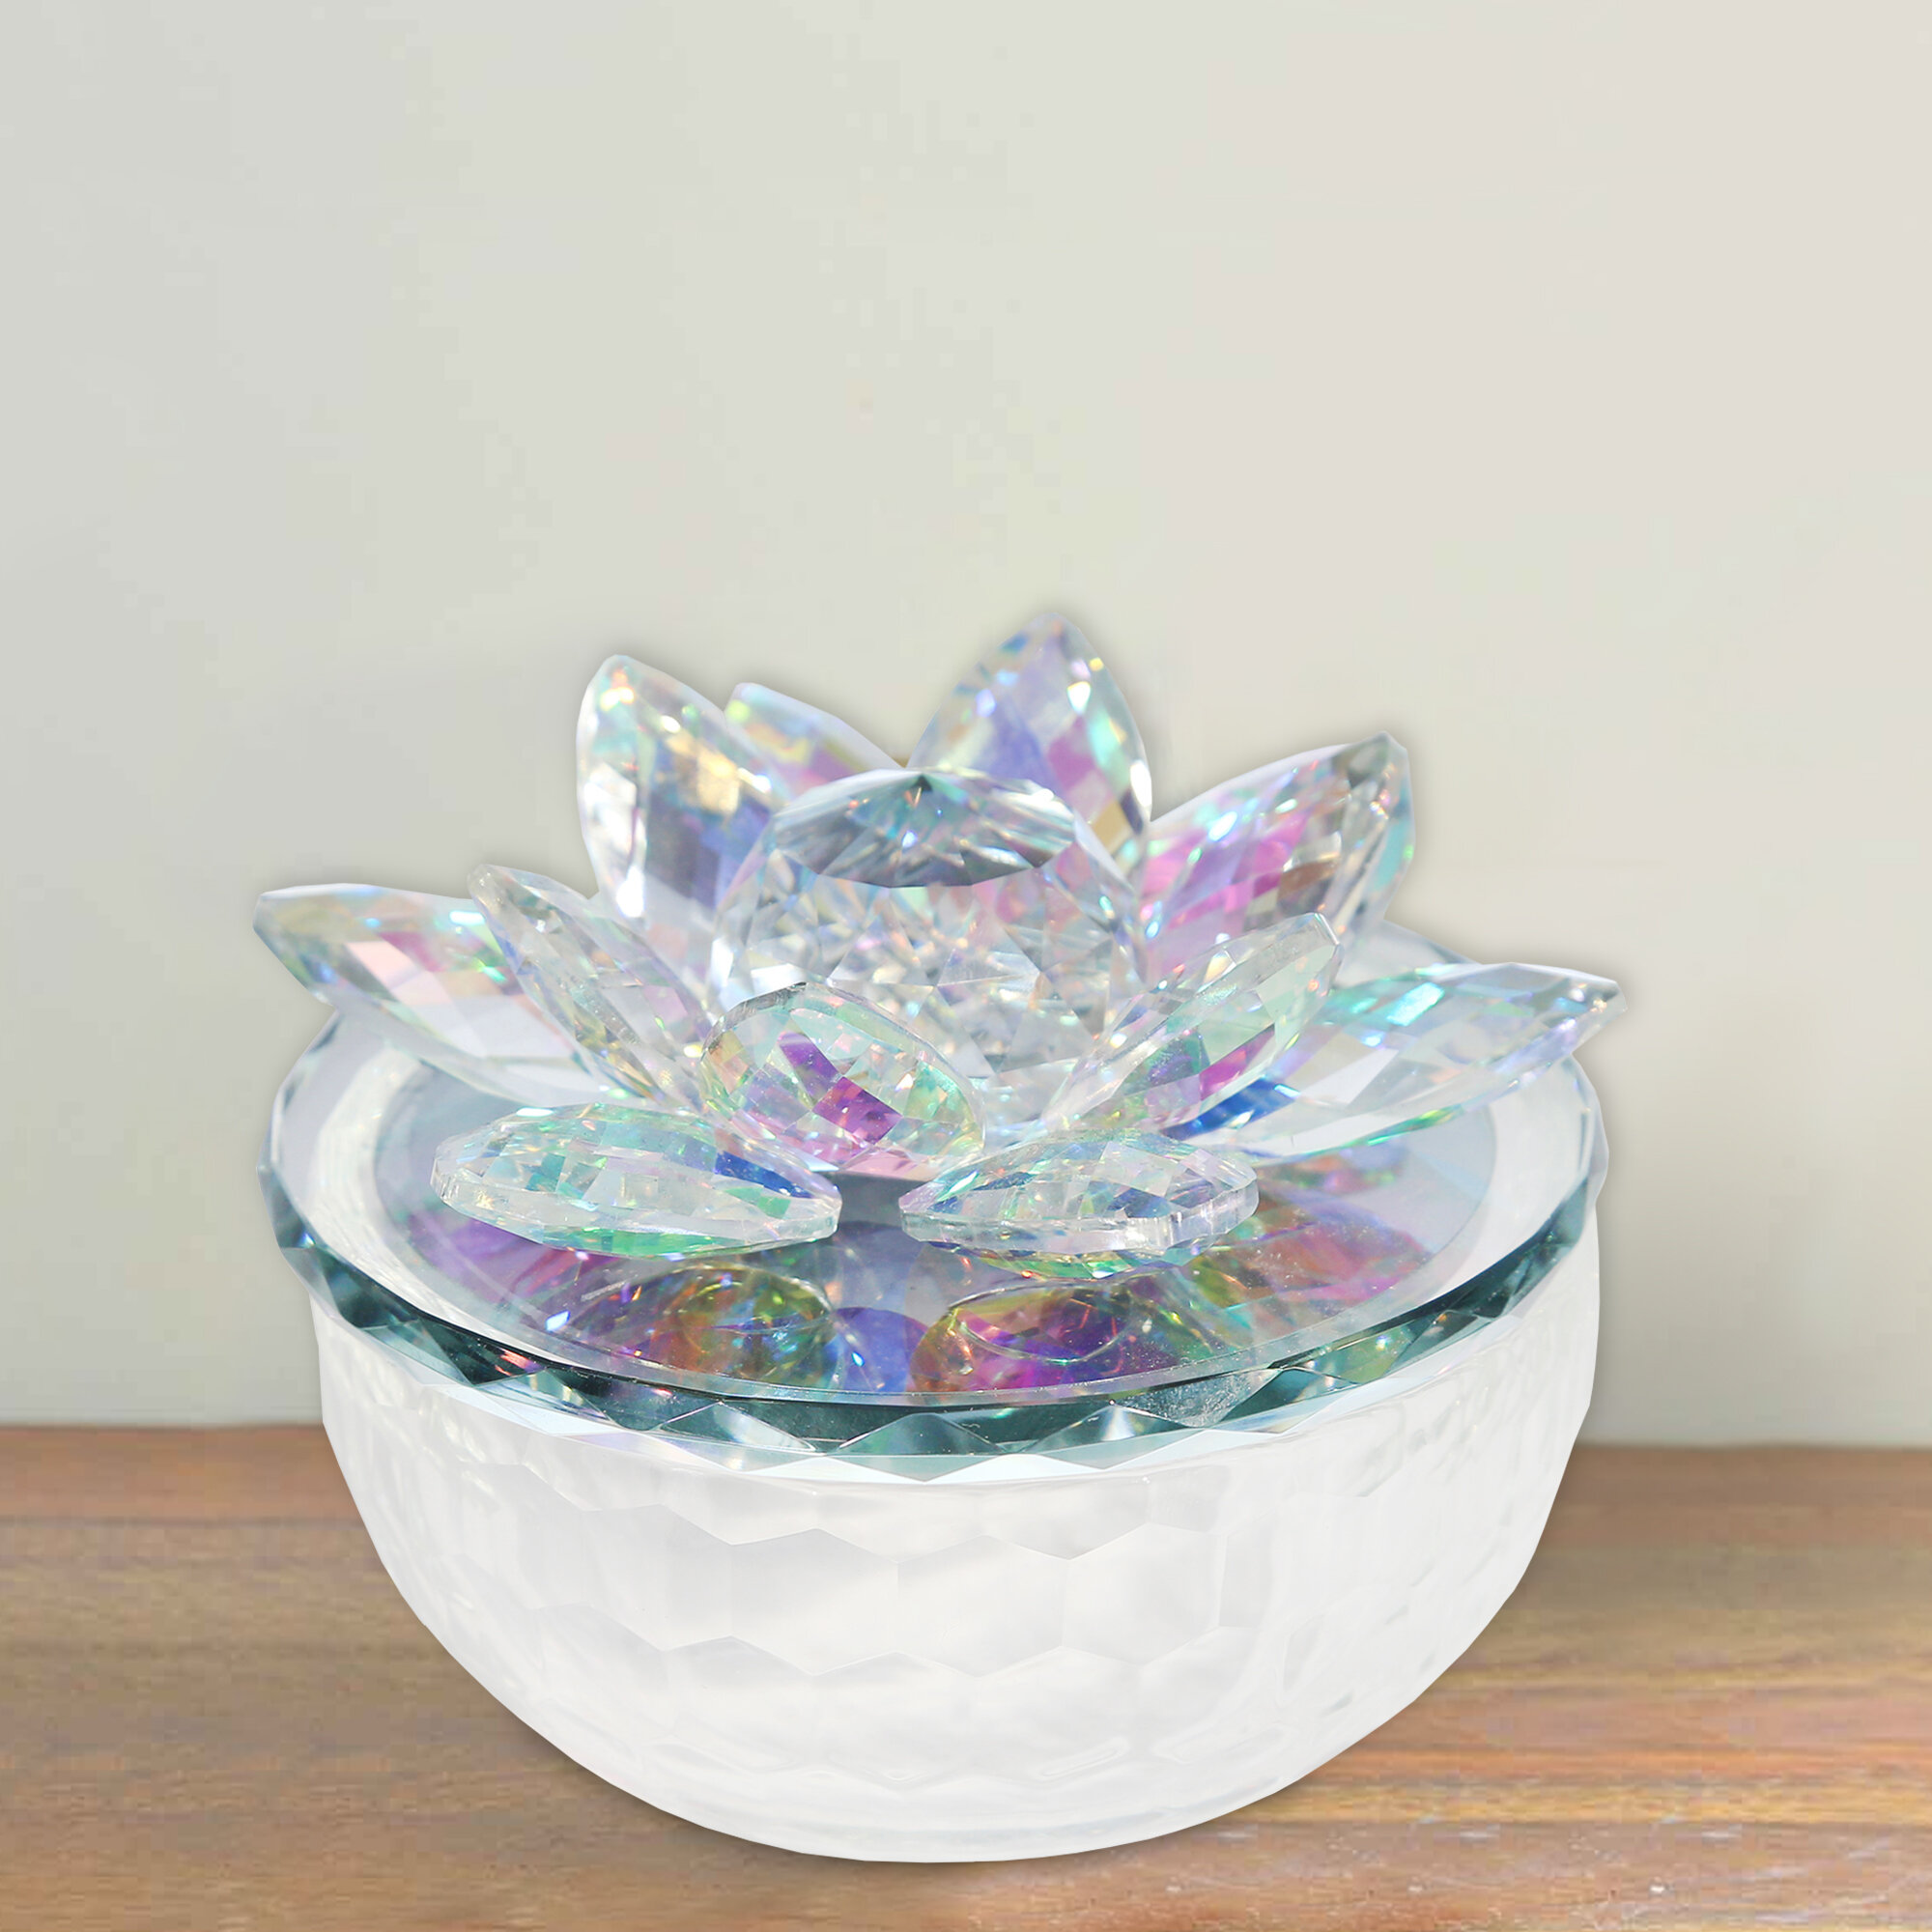 Rosdorf Park Tonkin Glass Trinket Accented With Crystal Lotus Flower Sculpture Reviews